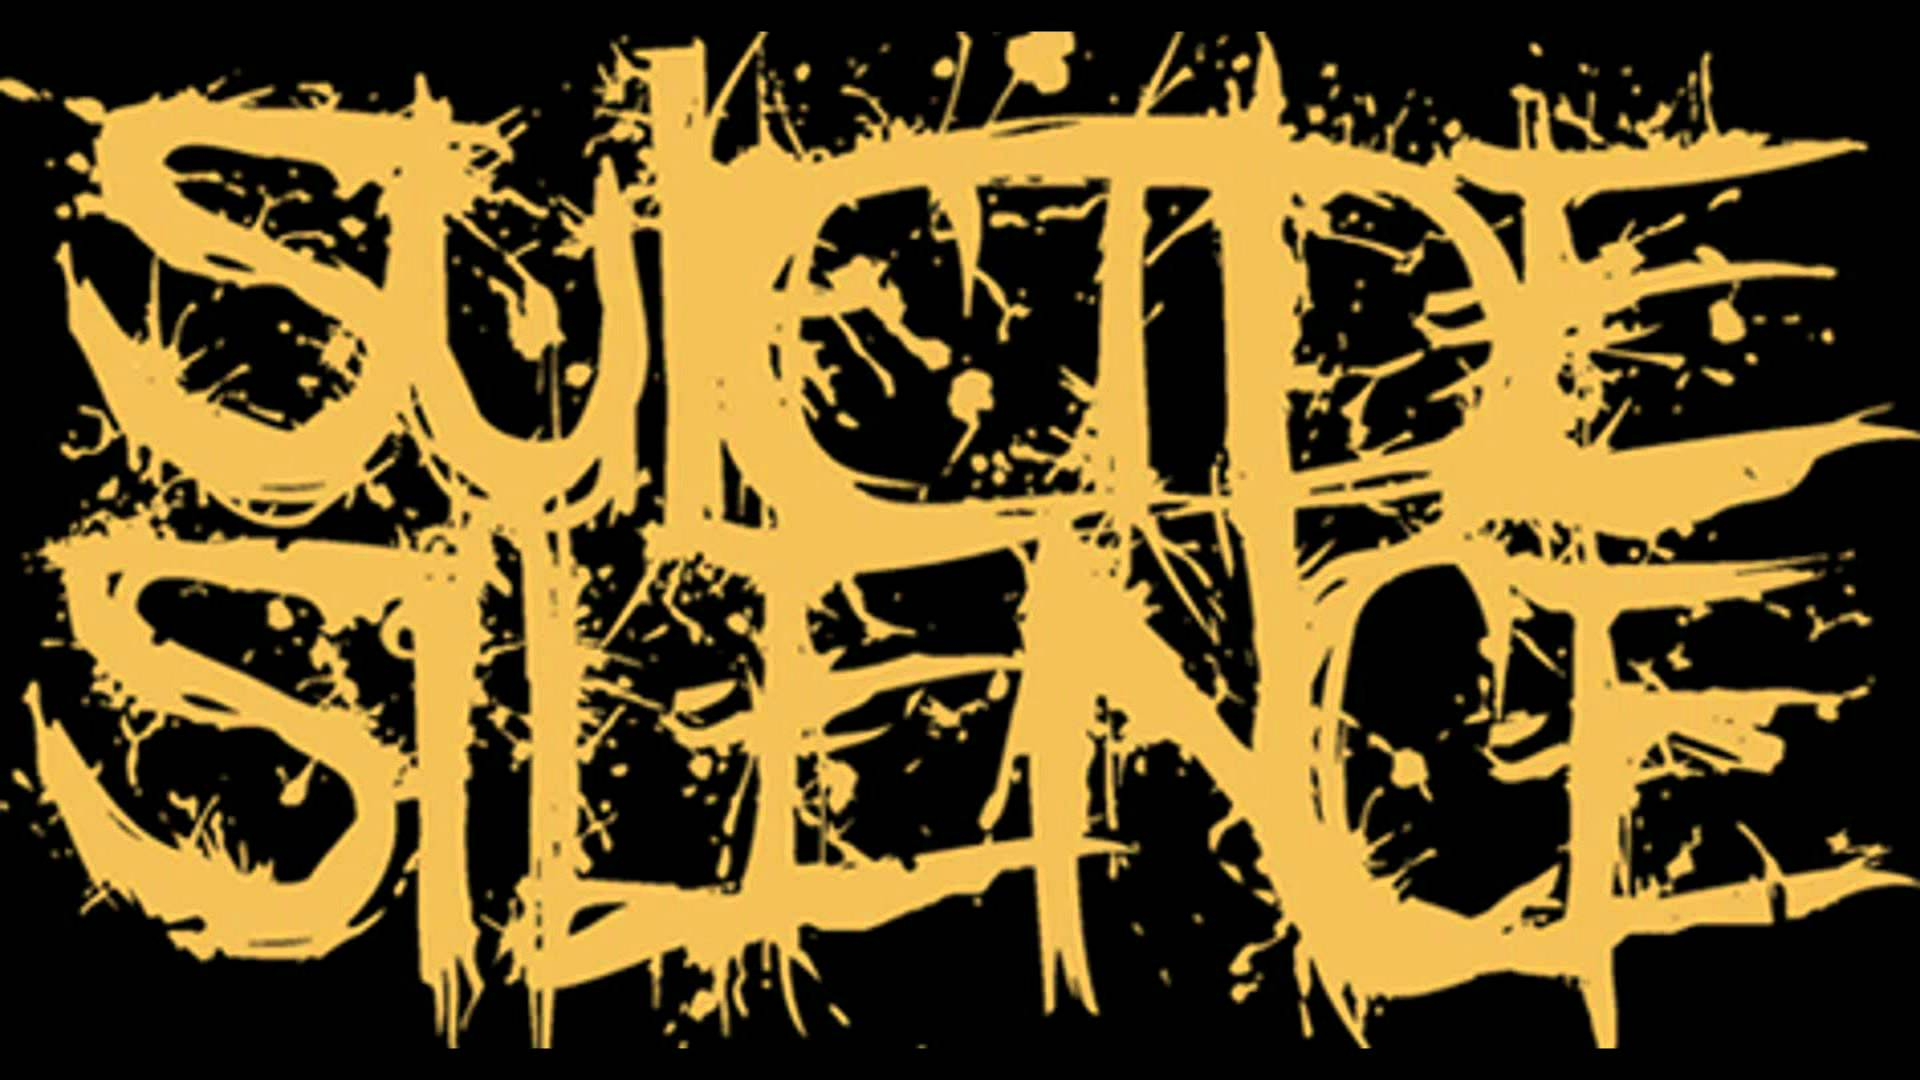 Image For > Suicide Silence Wallpapers